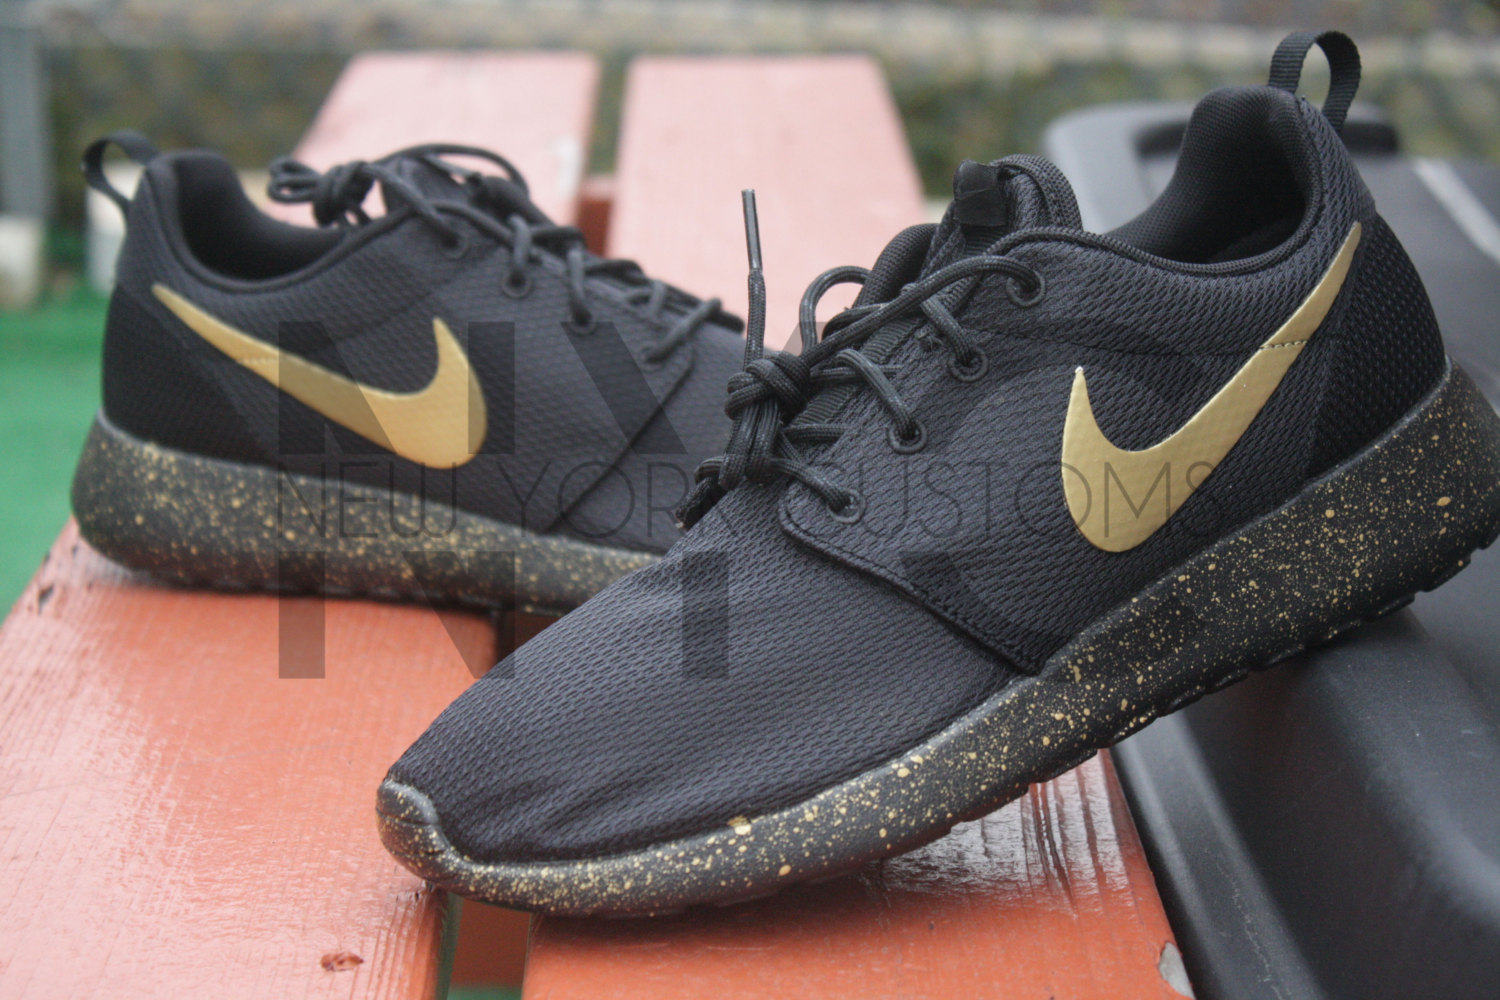 6518d8ac3d37 wtkghi Roshe One Run Black Gold Splatter Speckled Custom Women   Men ...